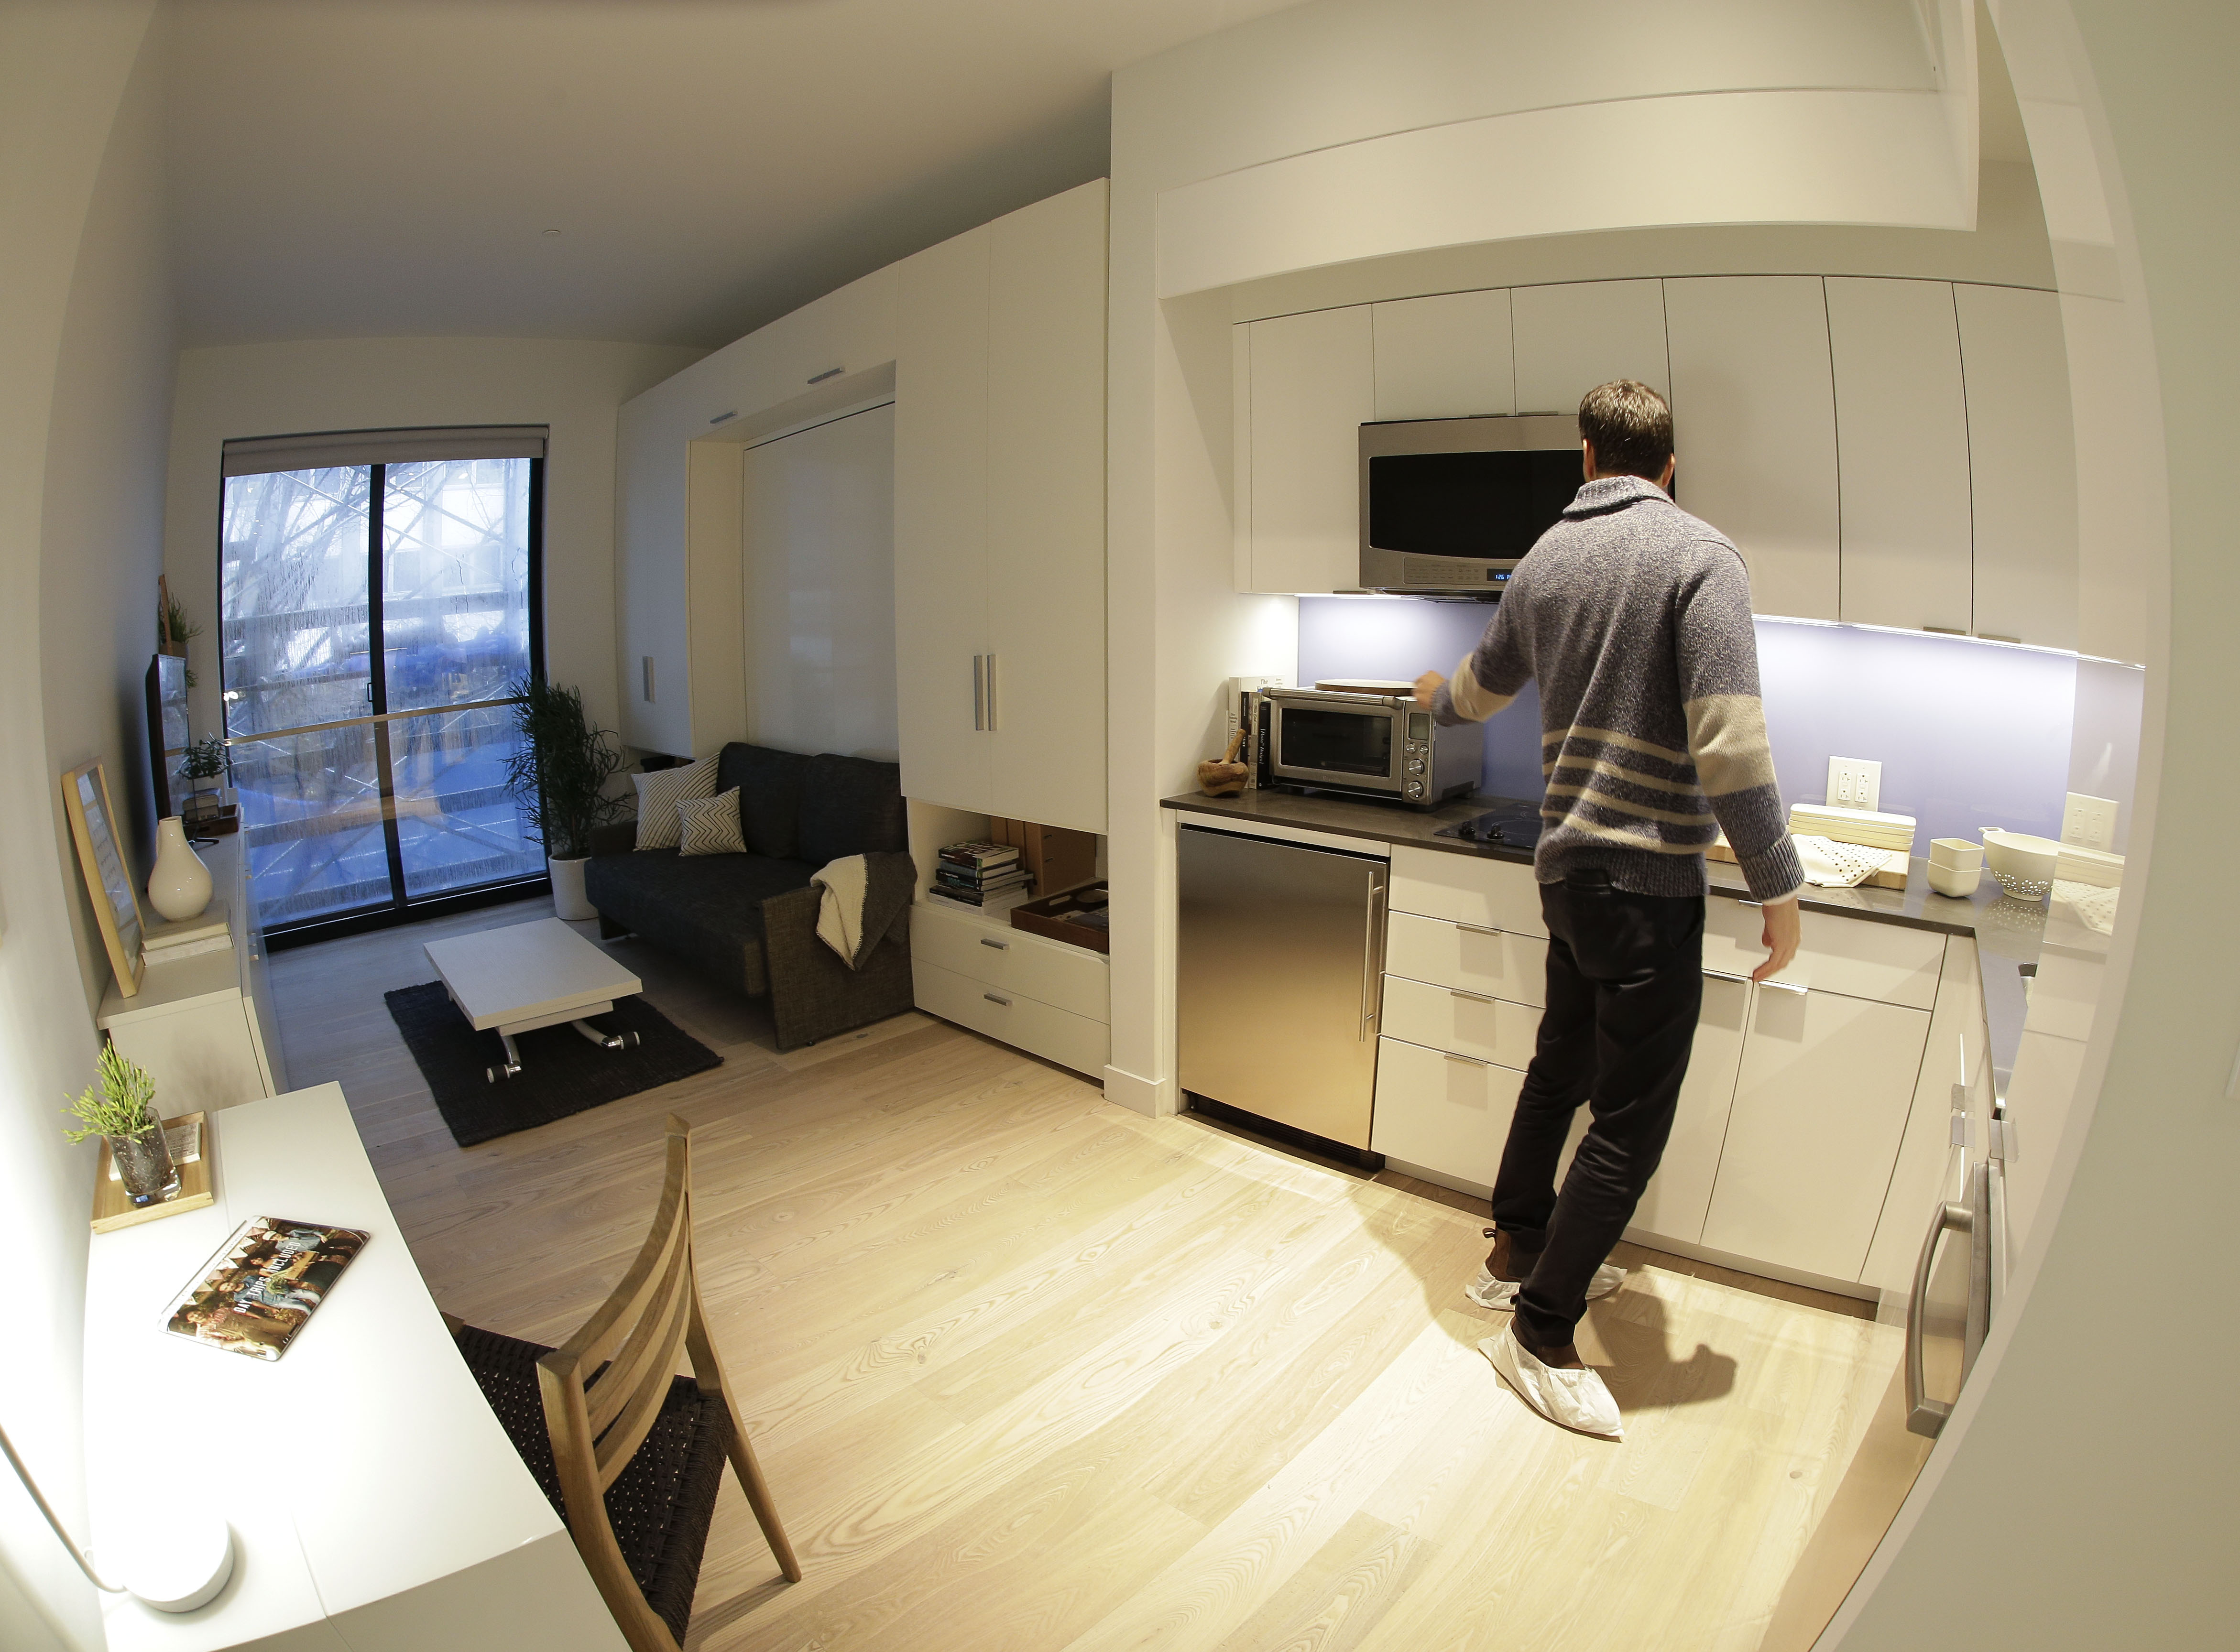 New York City May See More Micro Apartments